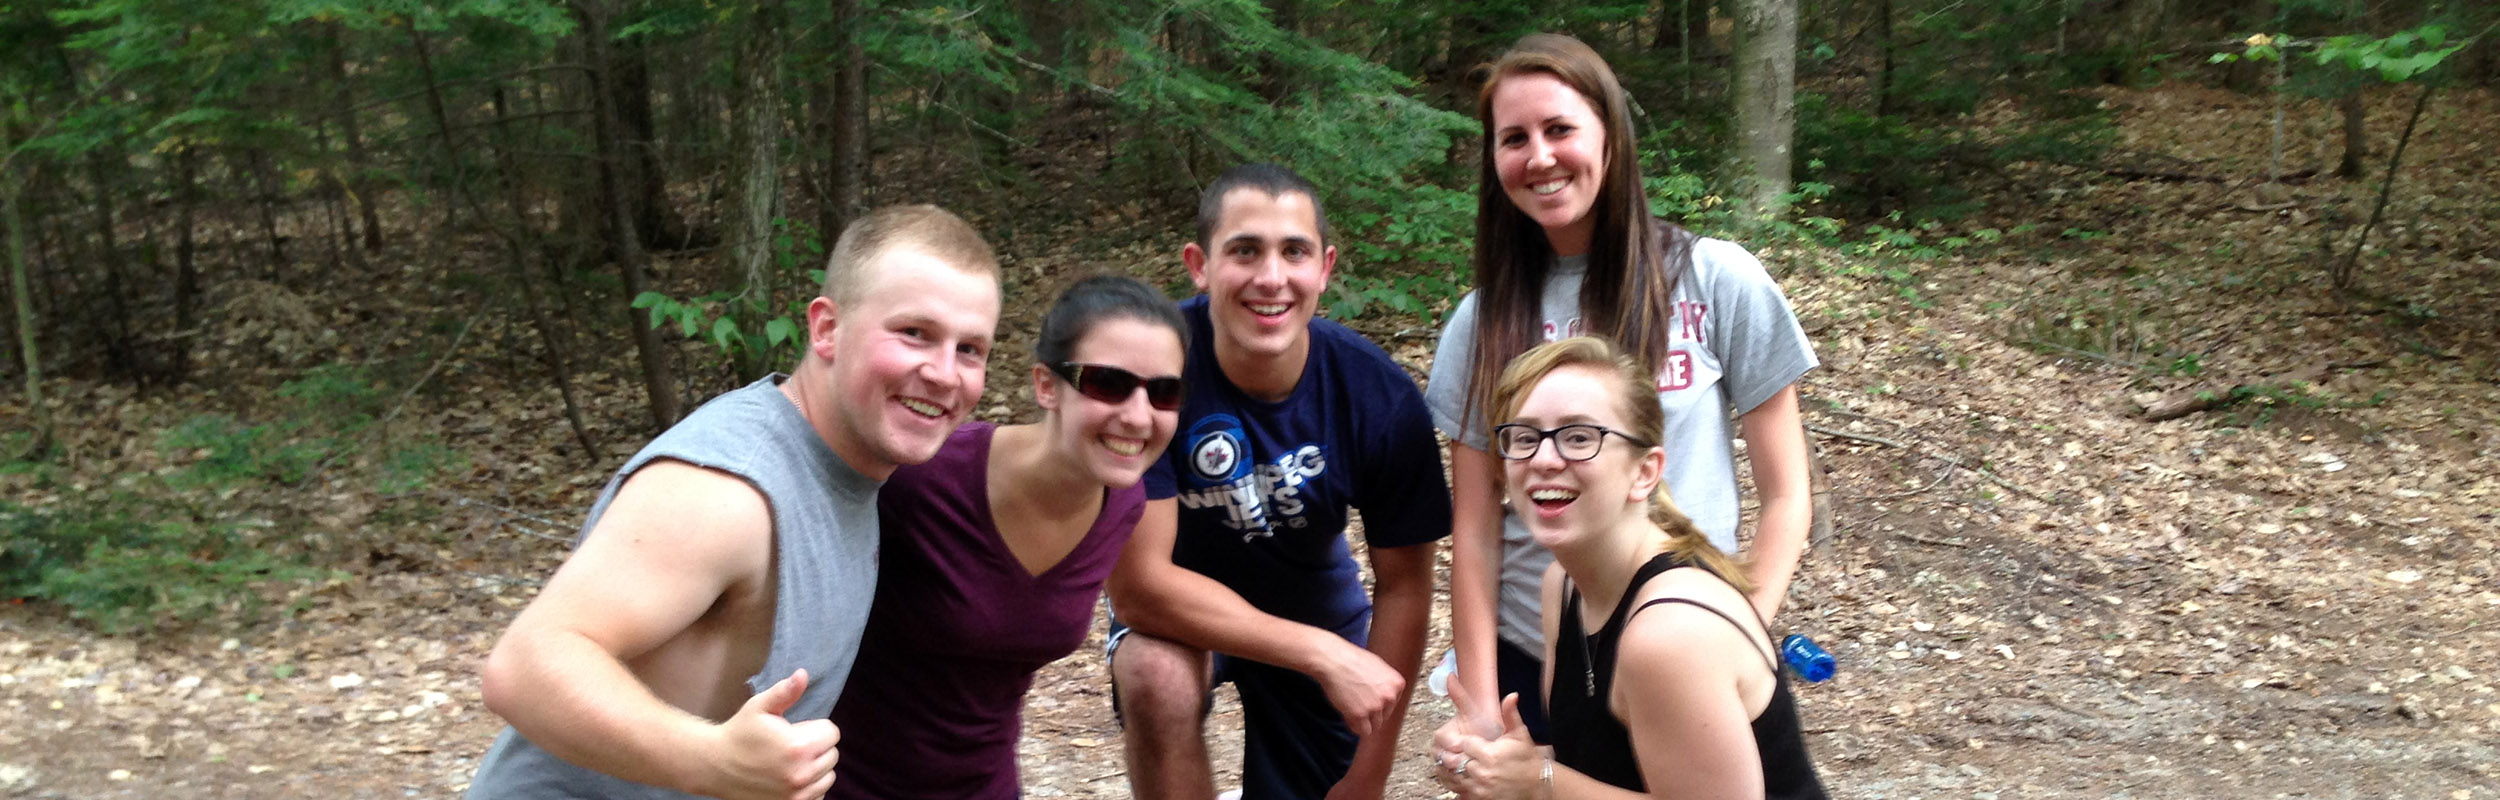 Group Retreats at Camp Mowglis